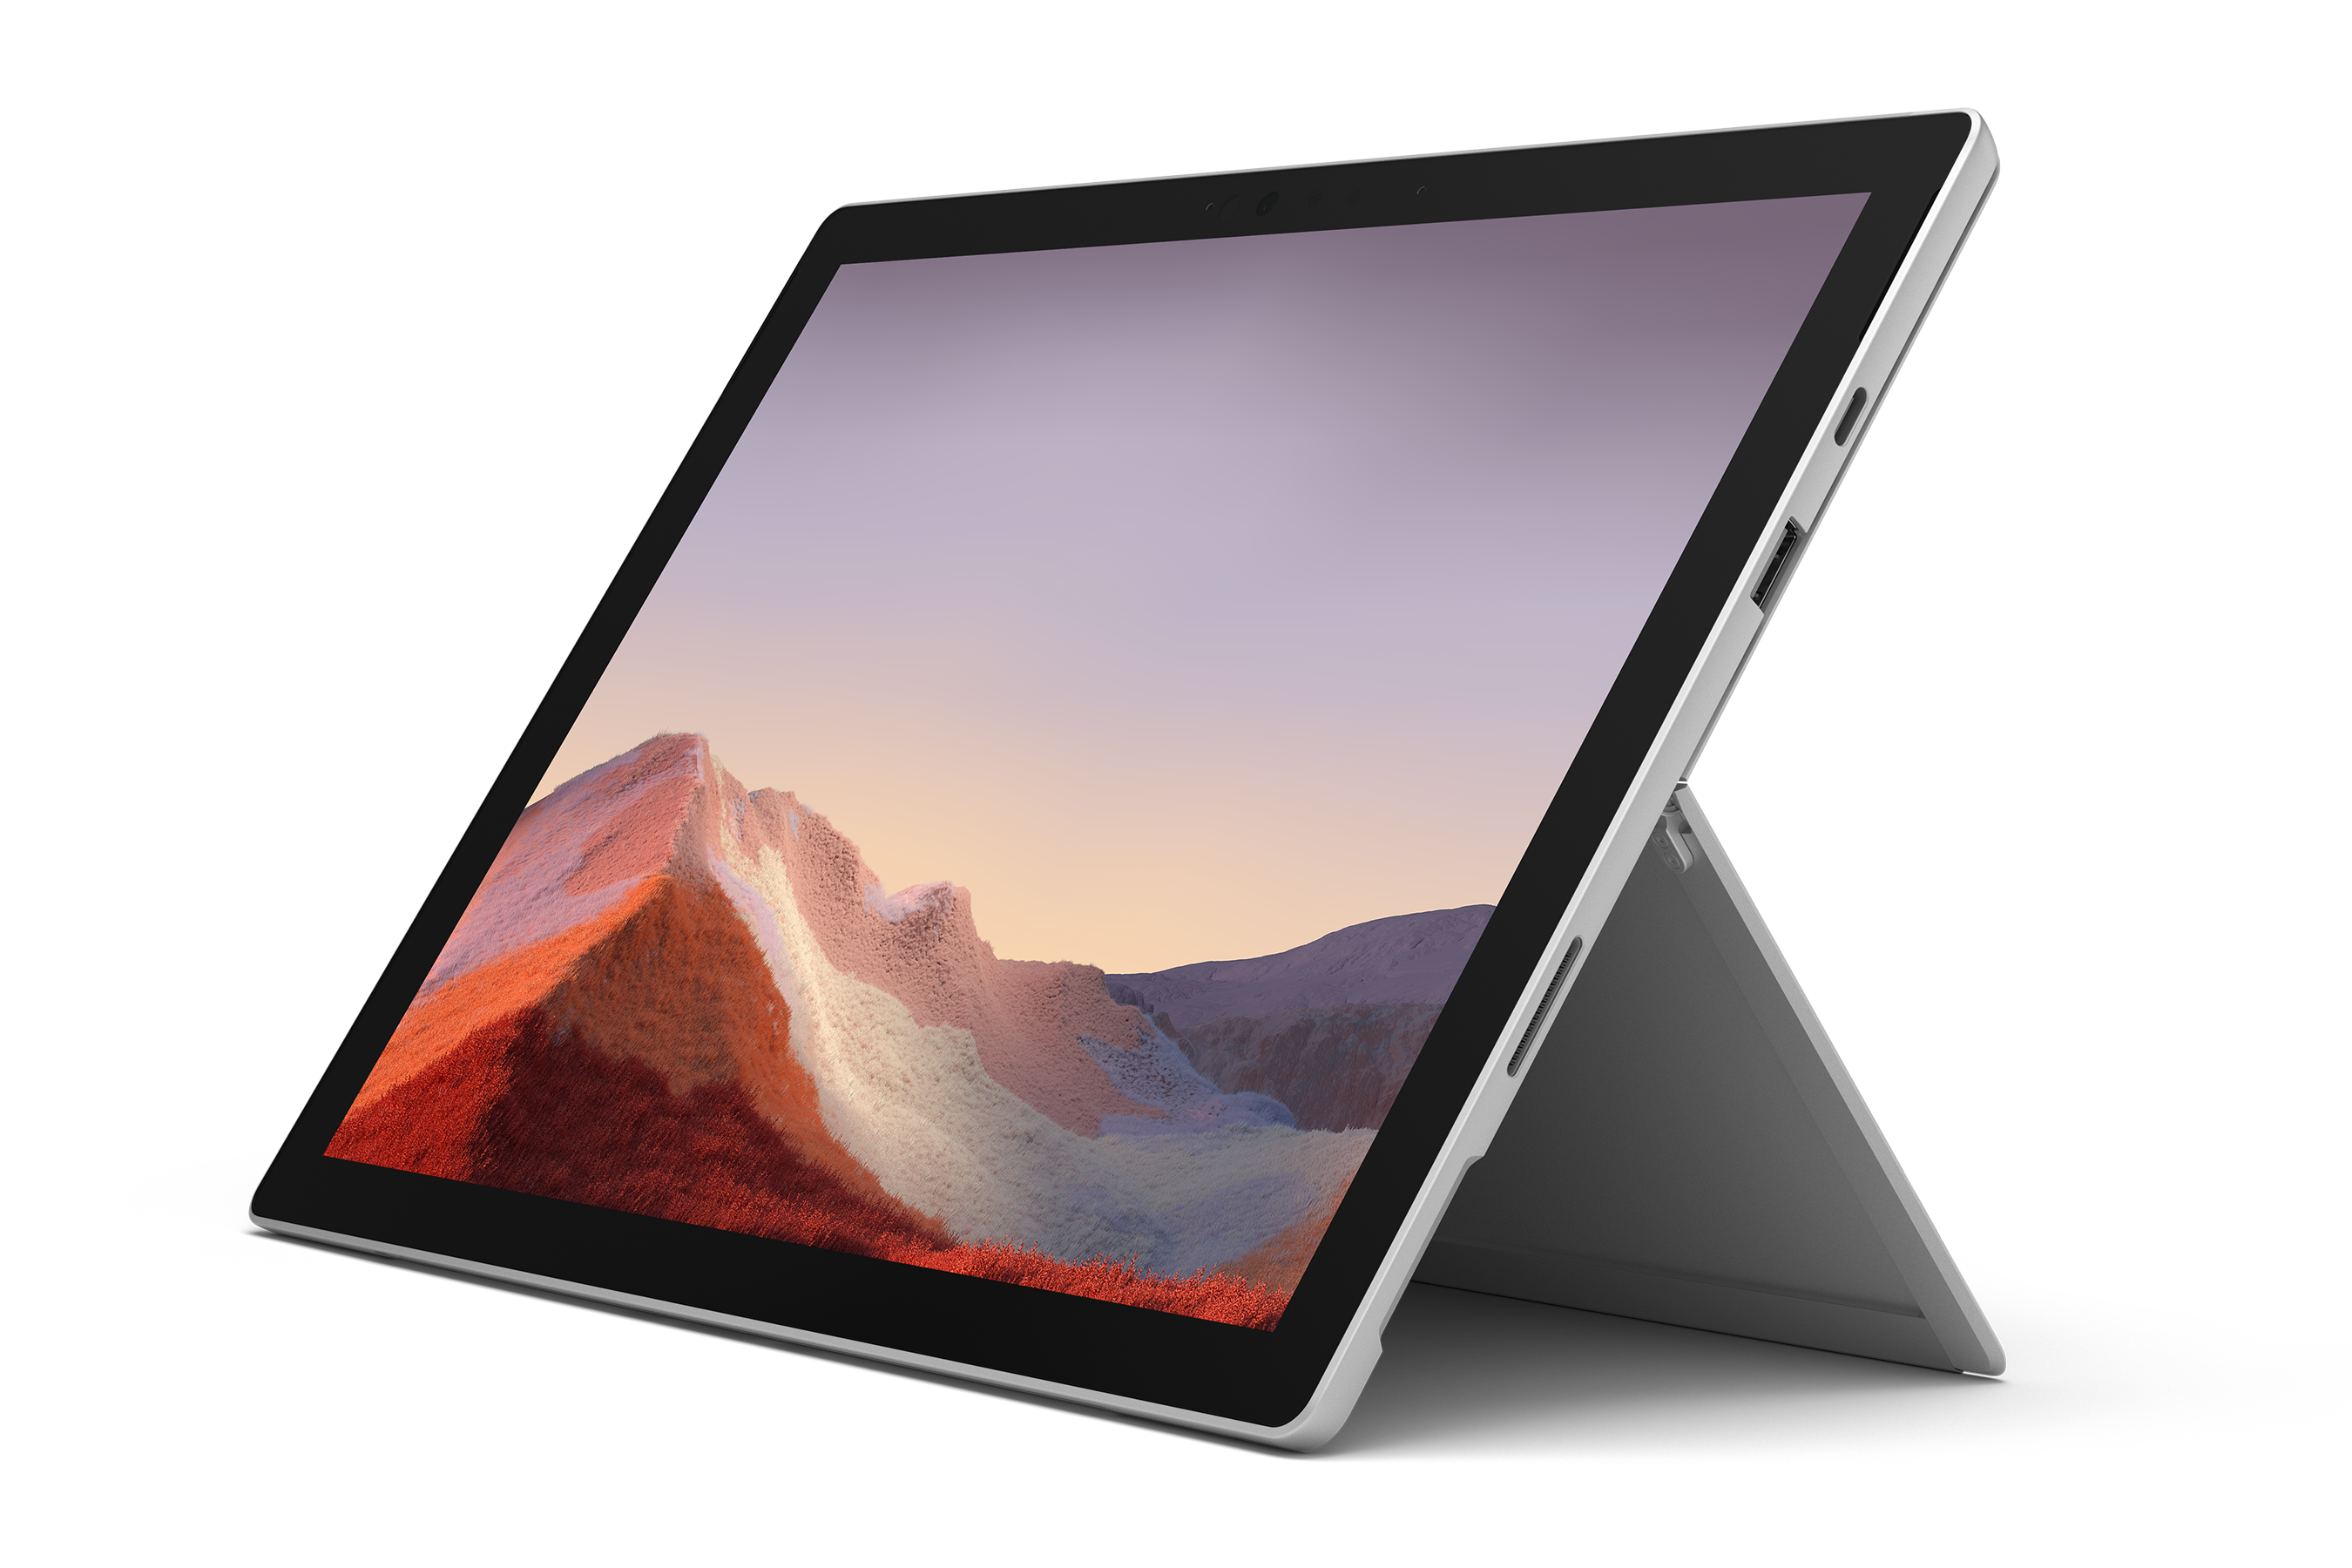 Buy Microsoft Surface Pro 7 for just £659 in incredible Cyber Monday deal